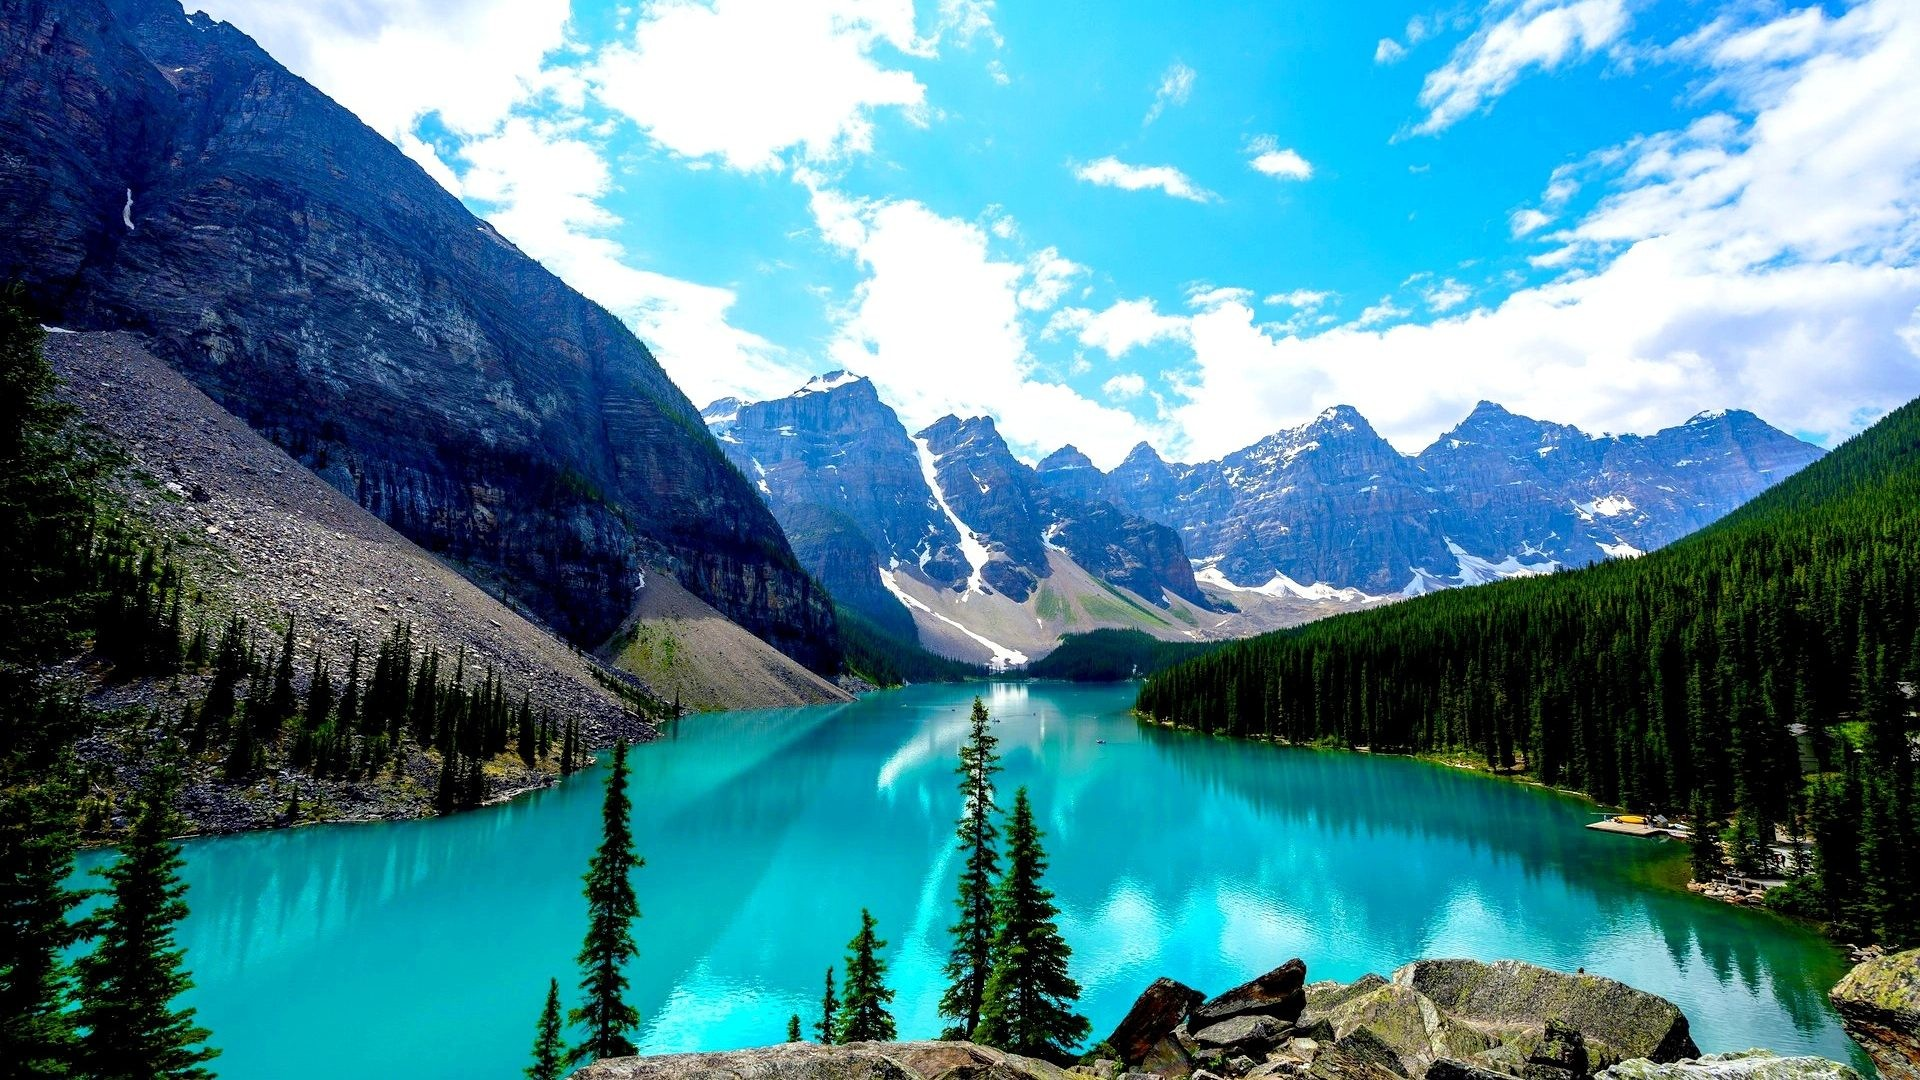 BANFF NATIONAL PARK CANADA Scenery Scenic Wallpaper Background Free Detail